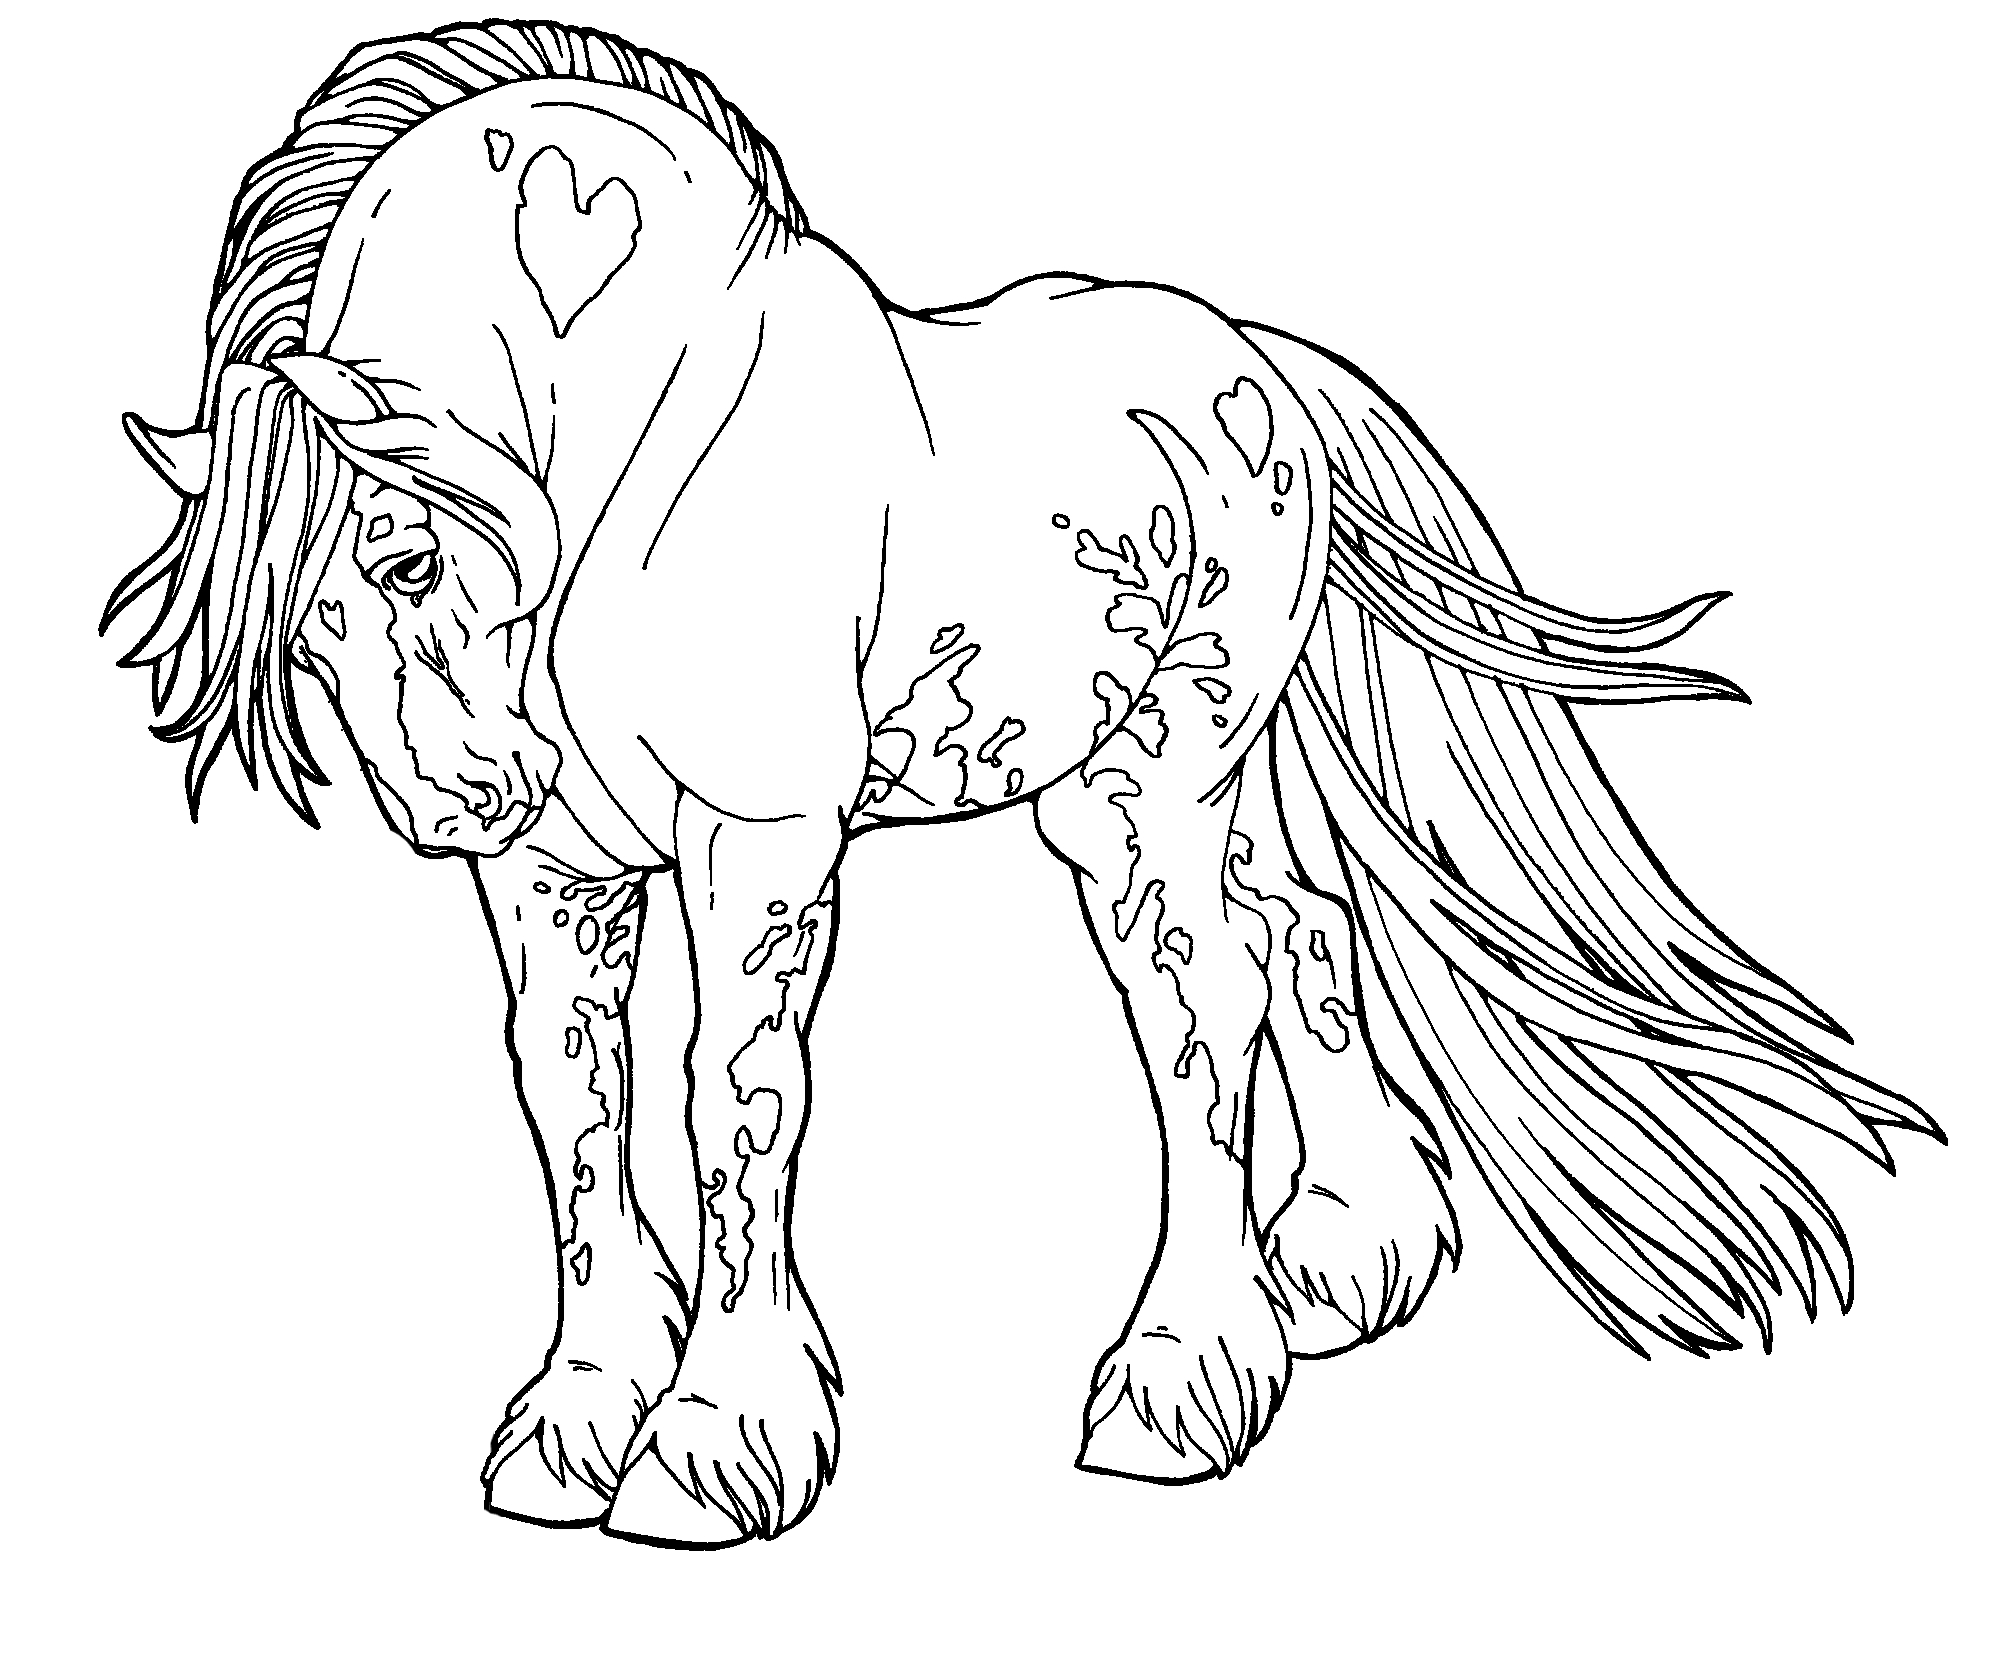 Coloring Pages Of Horses - Horse Detailed Coloring Pages Gallery